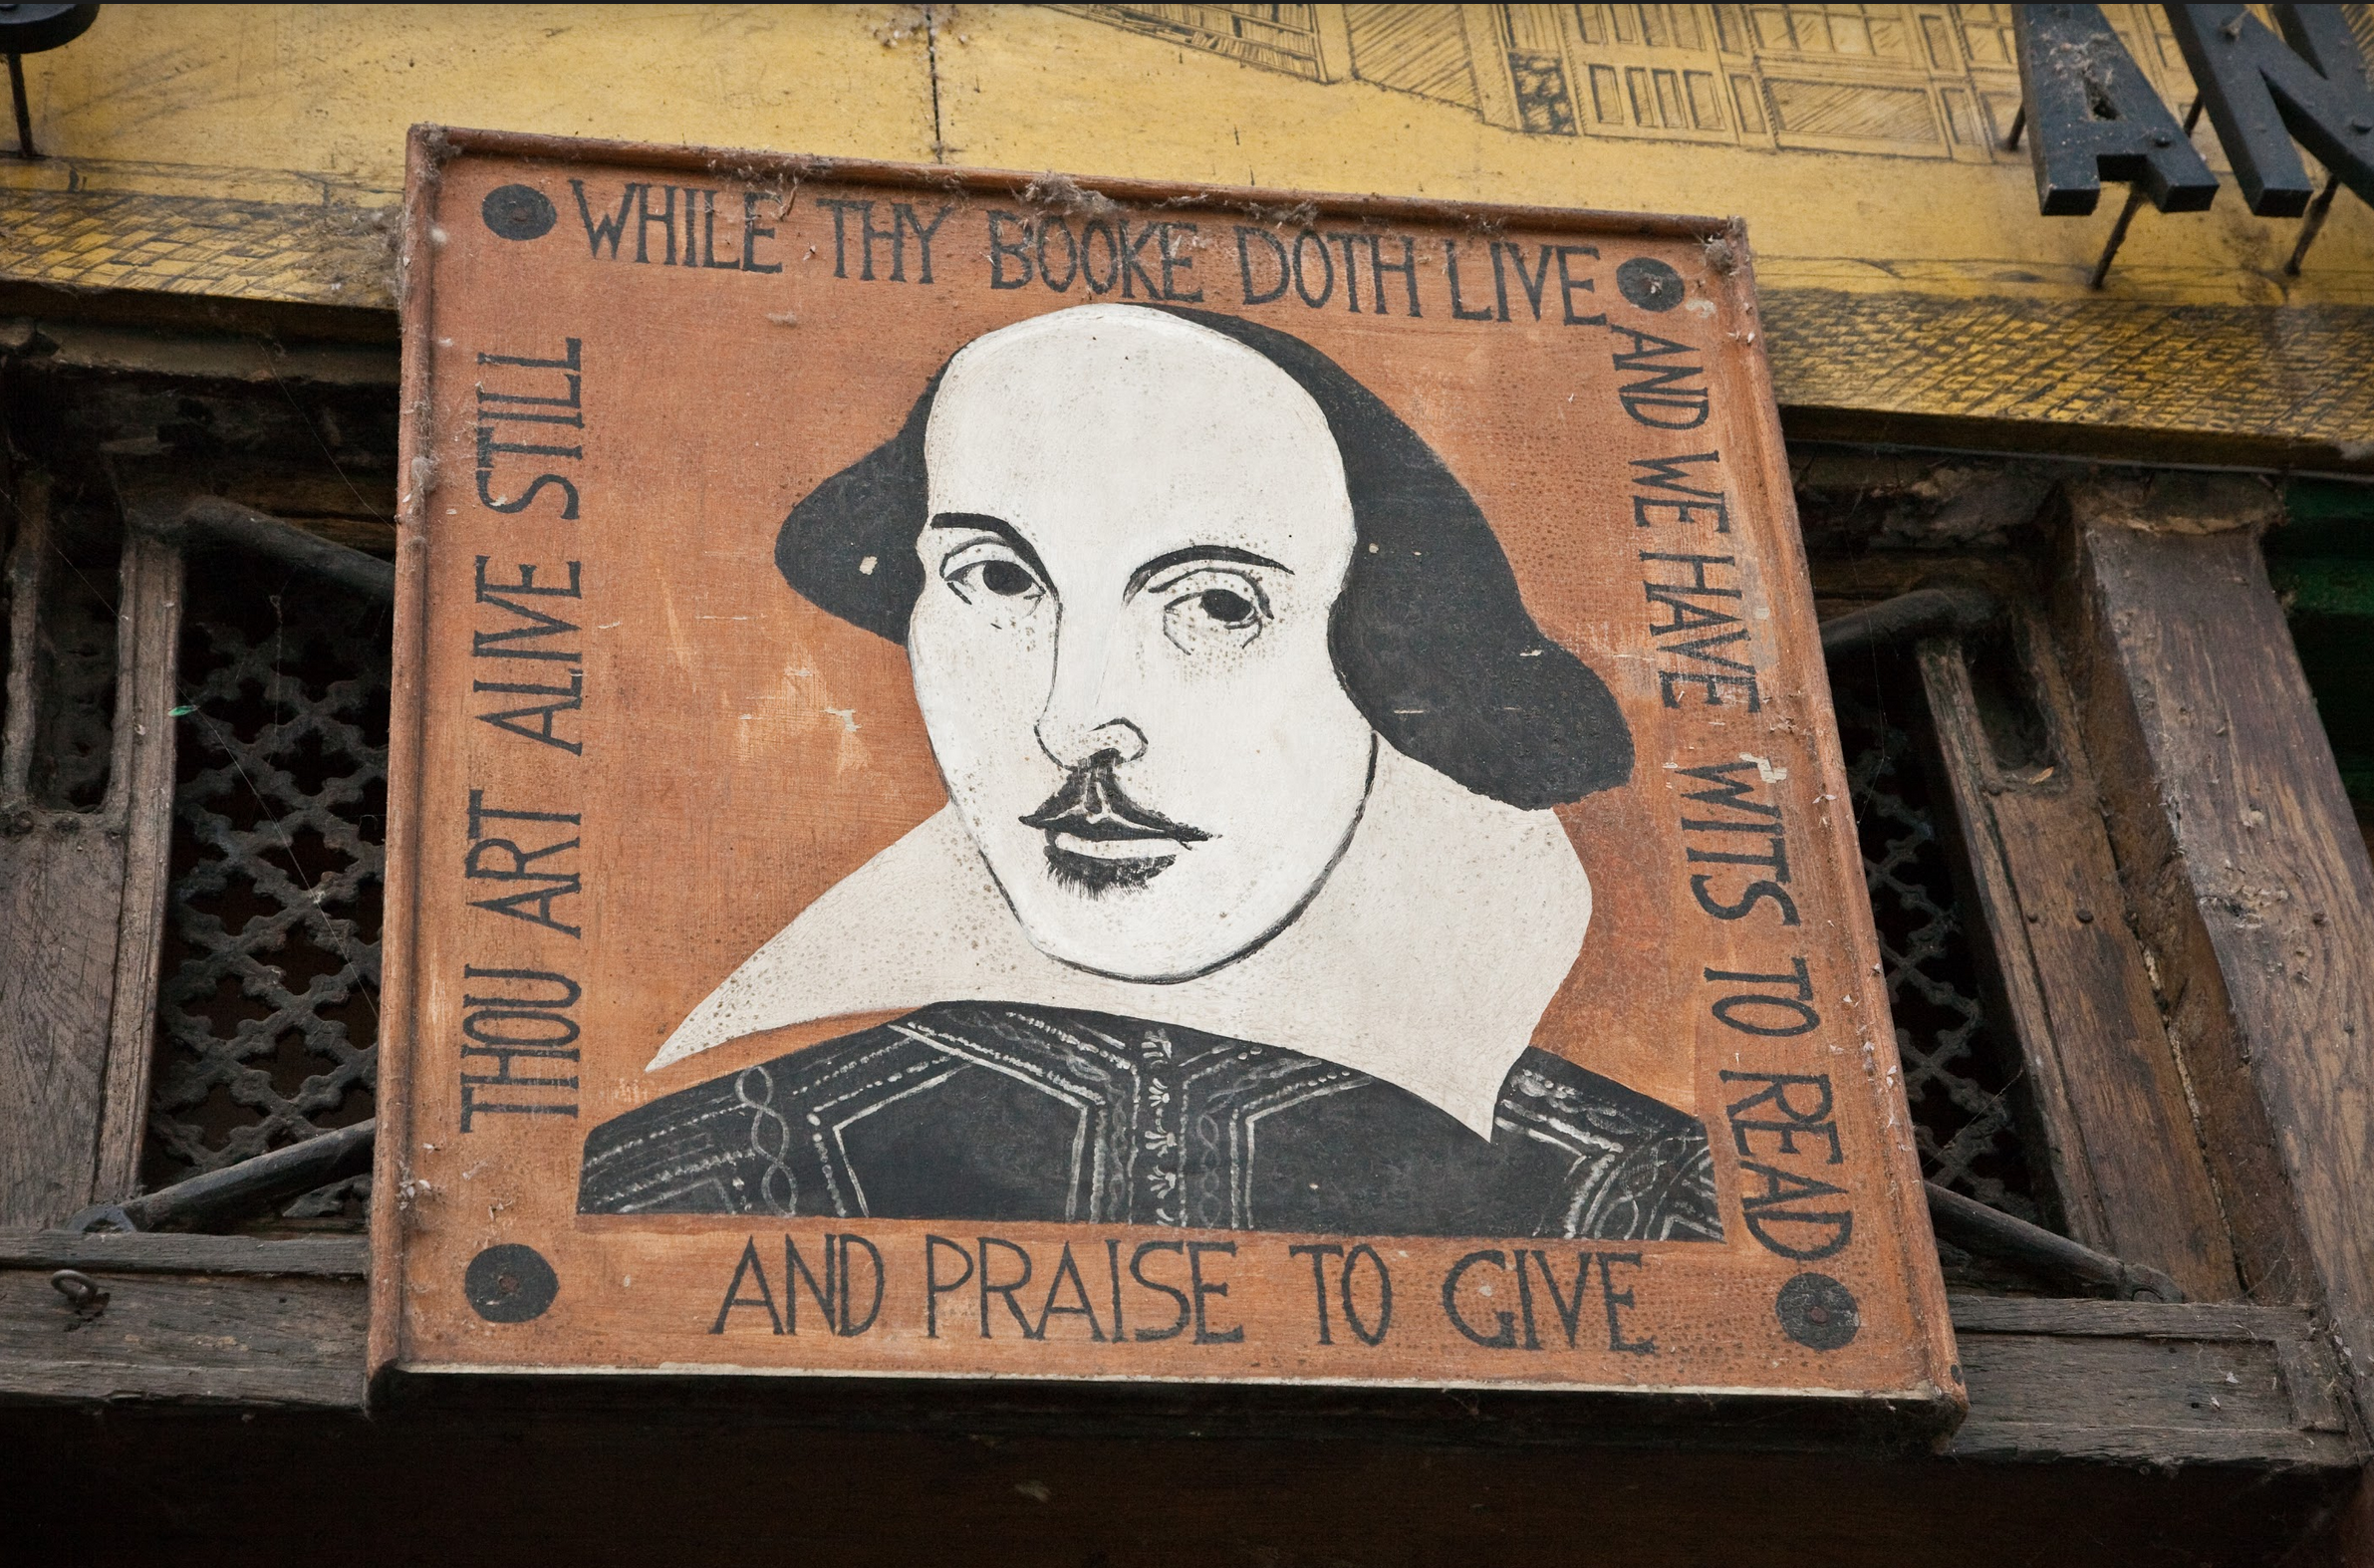 Commentary: Student says 'hear, hear' for Shakespeare